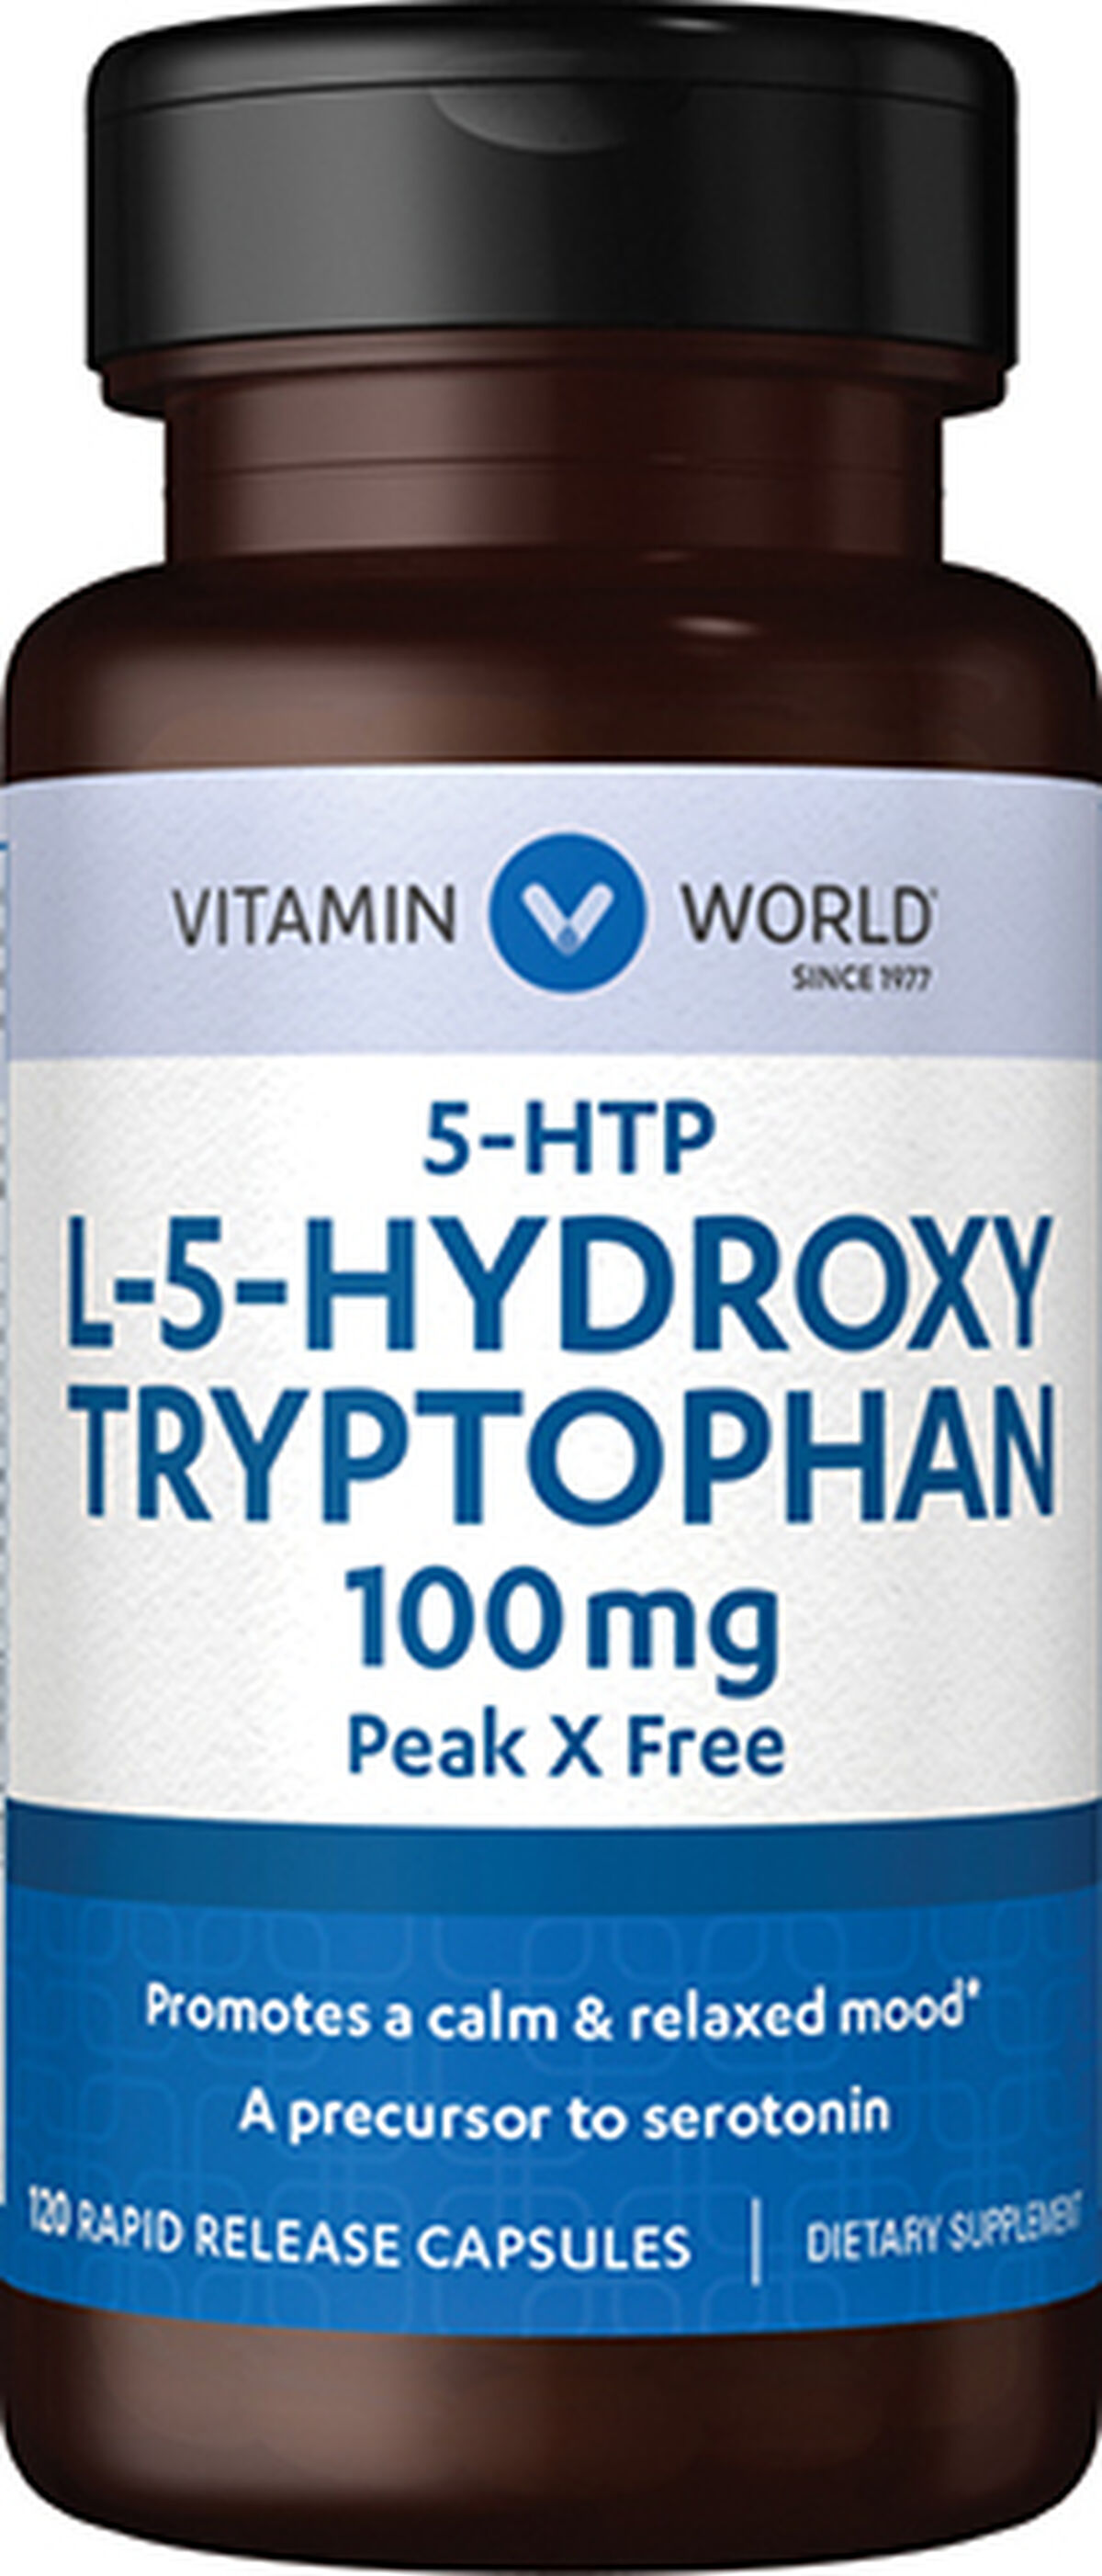 5 htp vitamin world